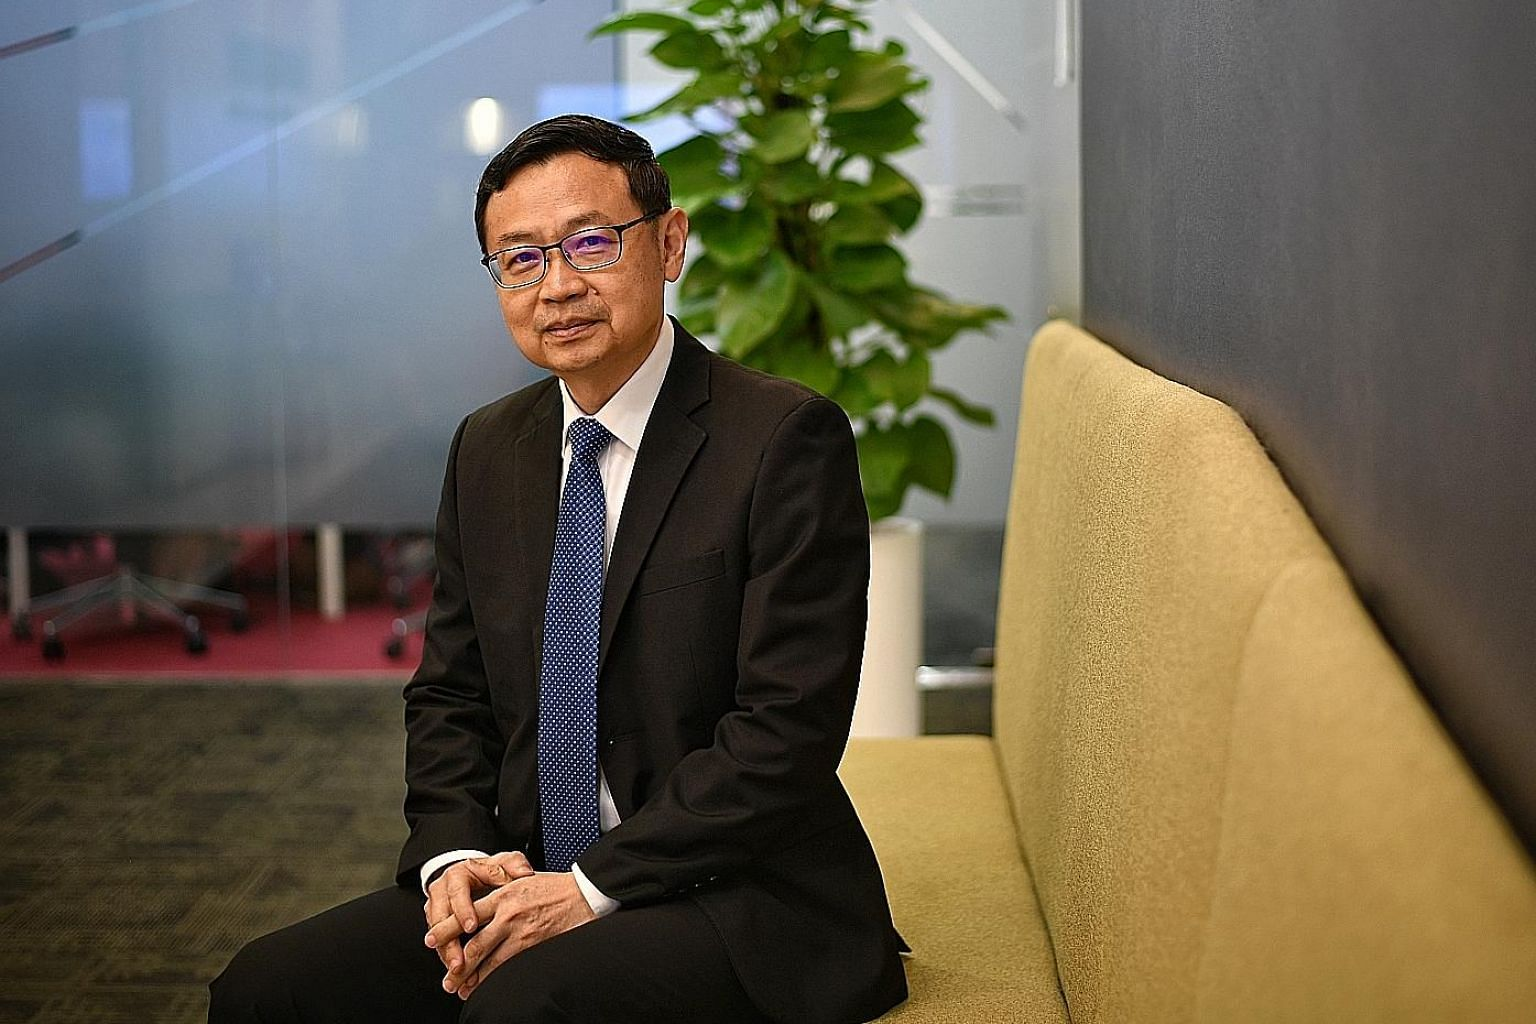 Mr Tong Yew Heng, chief executive of NetLink NBN Trust, says that in the residential segment, NetLink is the only fibre network provider with nationwide coverage. For the non-residential segment, NetLink's competitive edge is its extensive nationwide